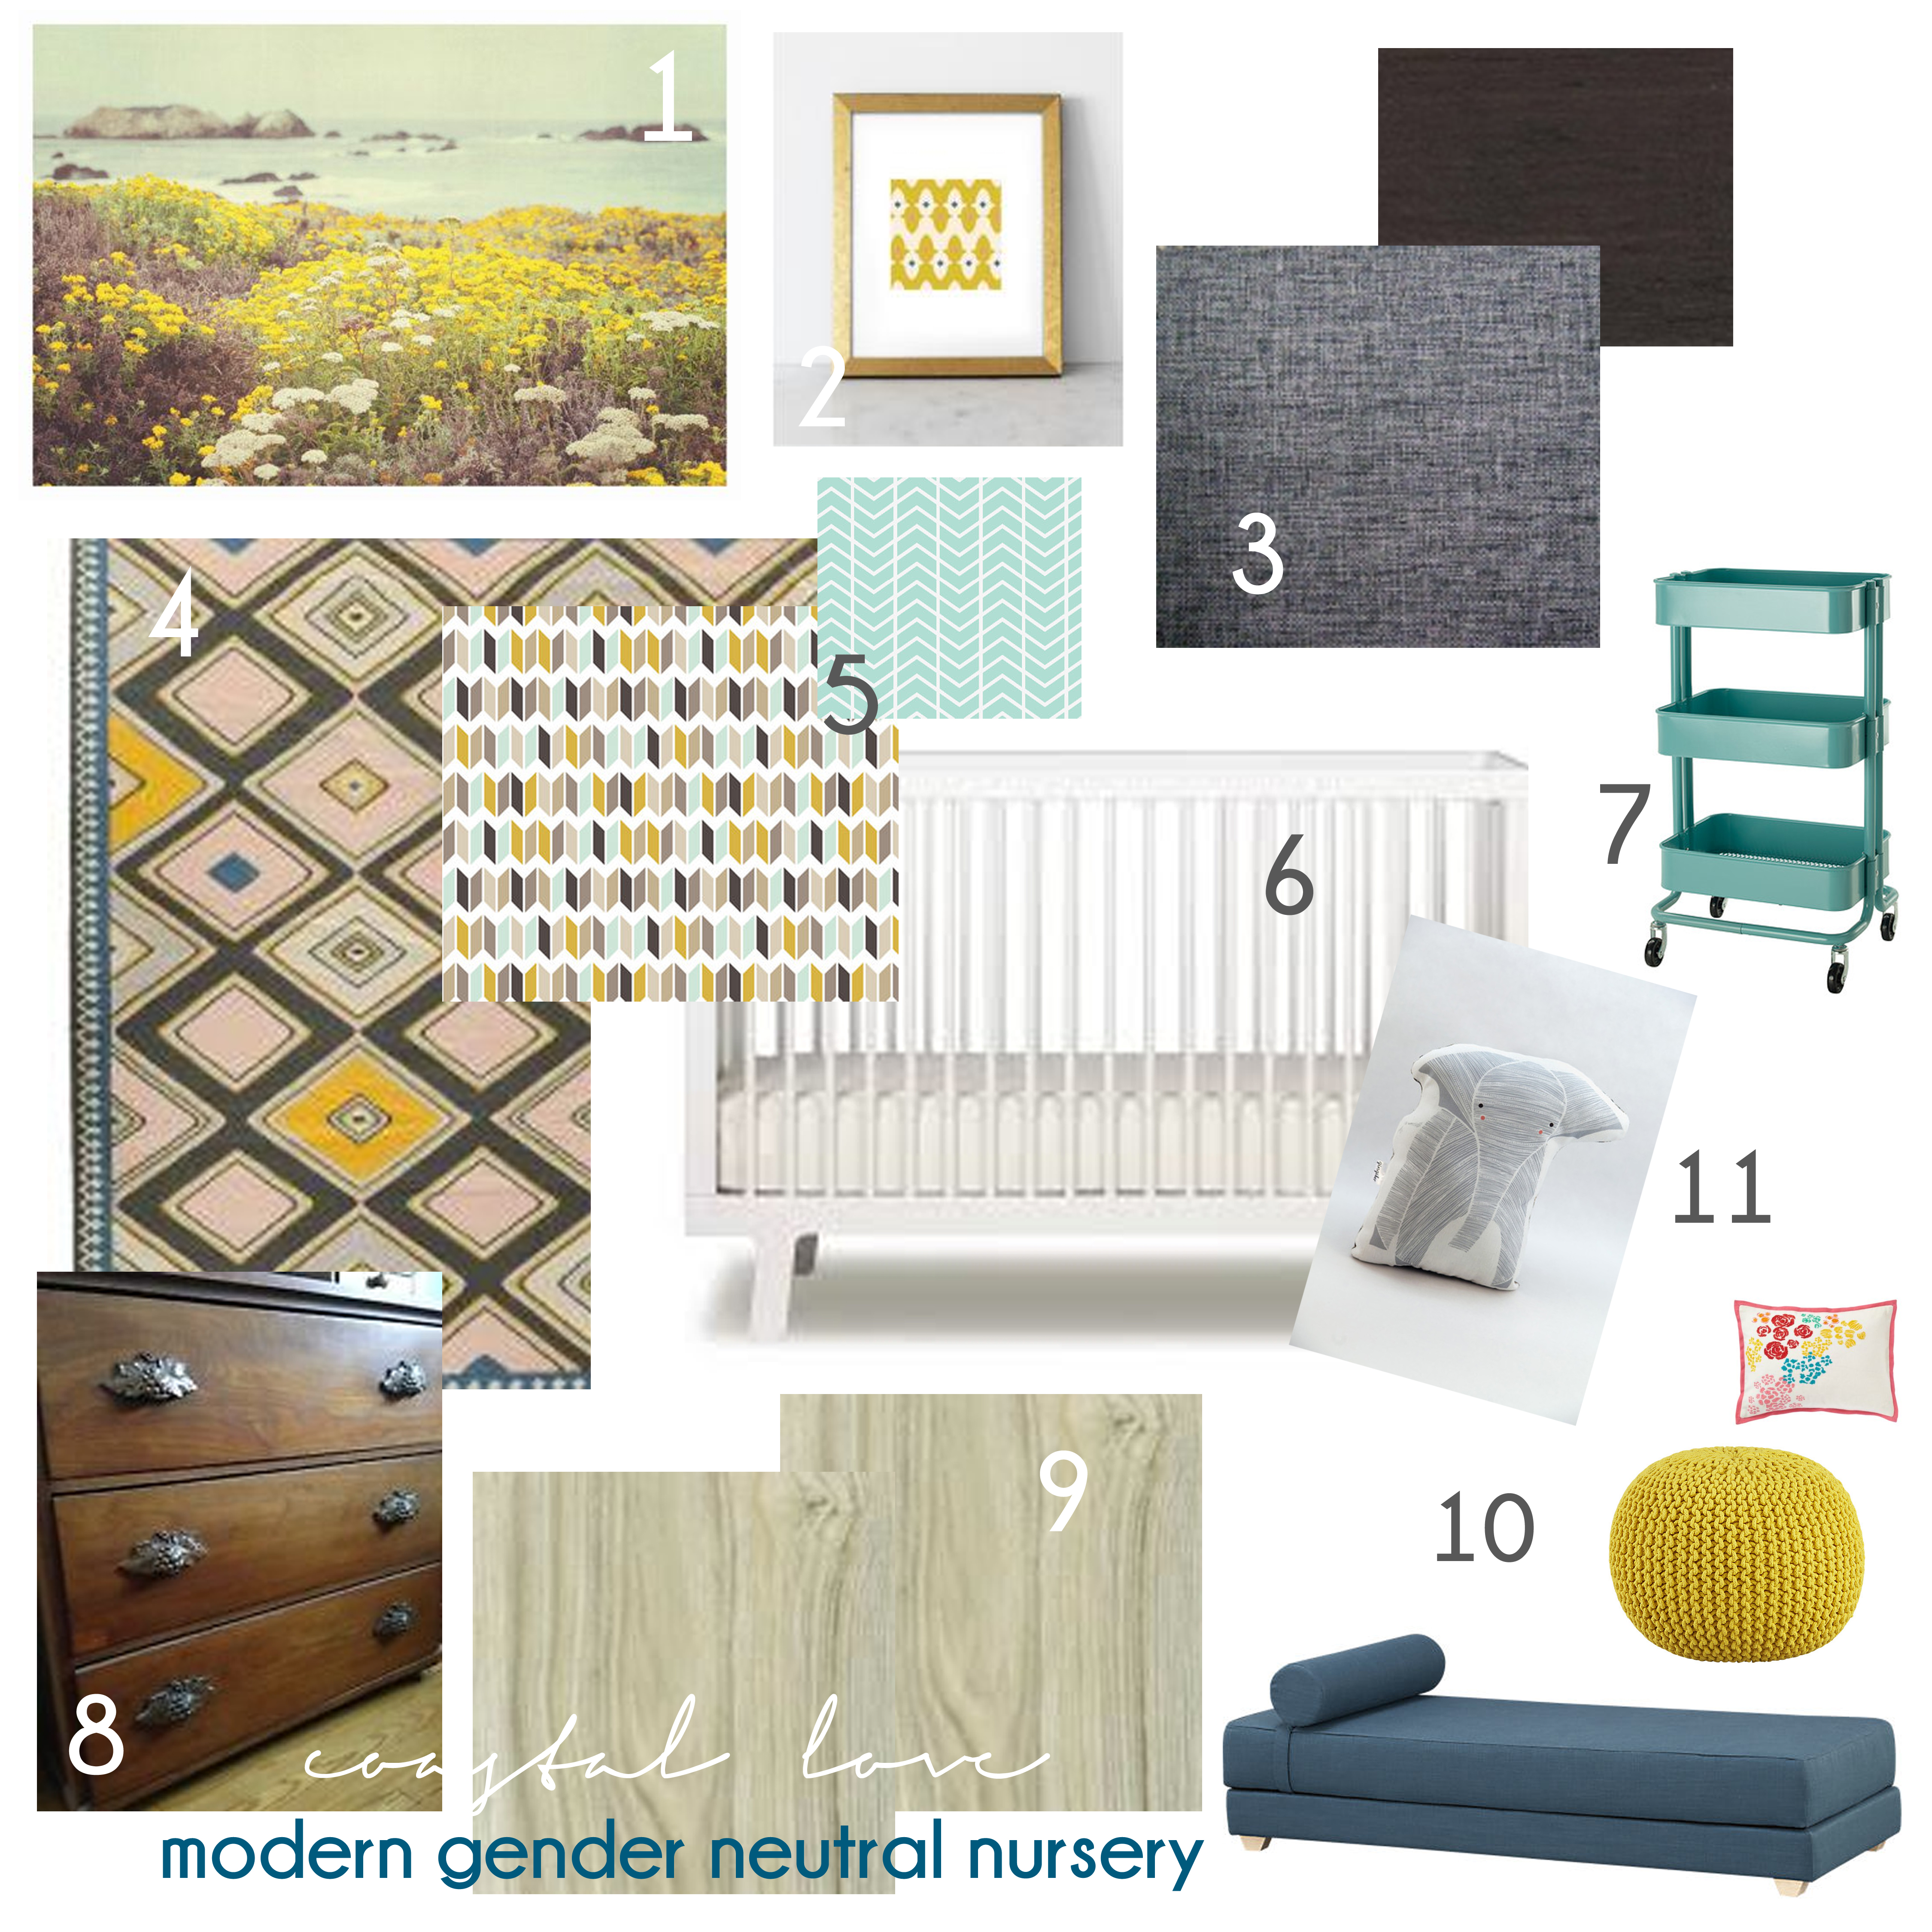 Modern Gender Neutral Nursery Inspiration